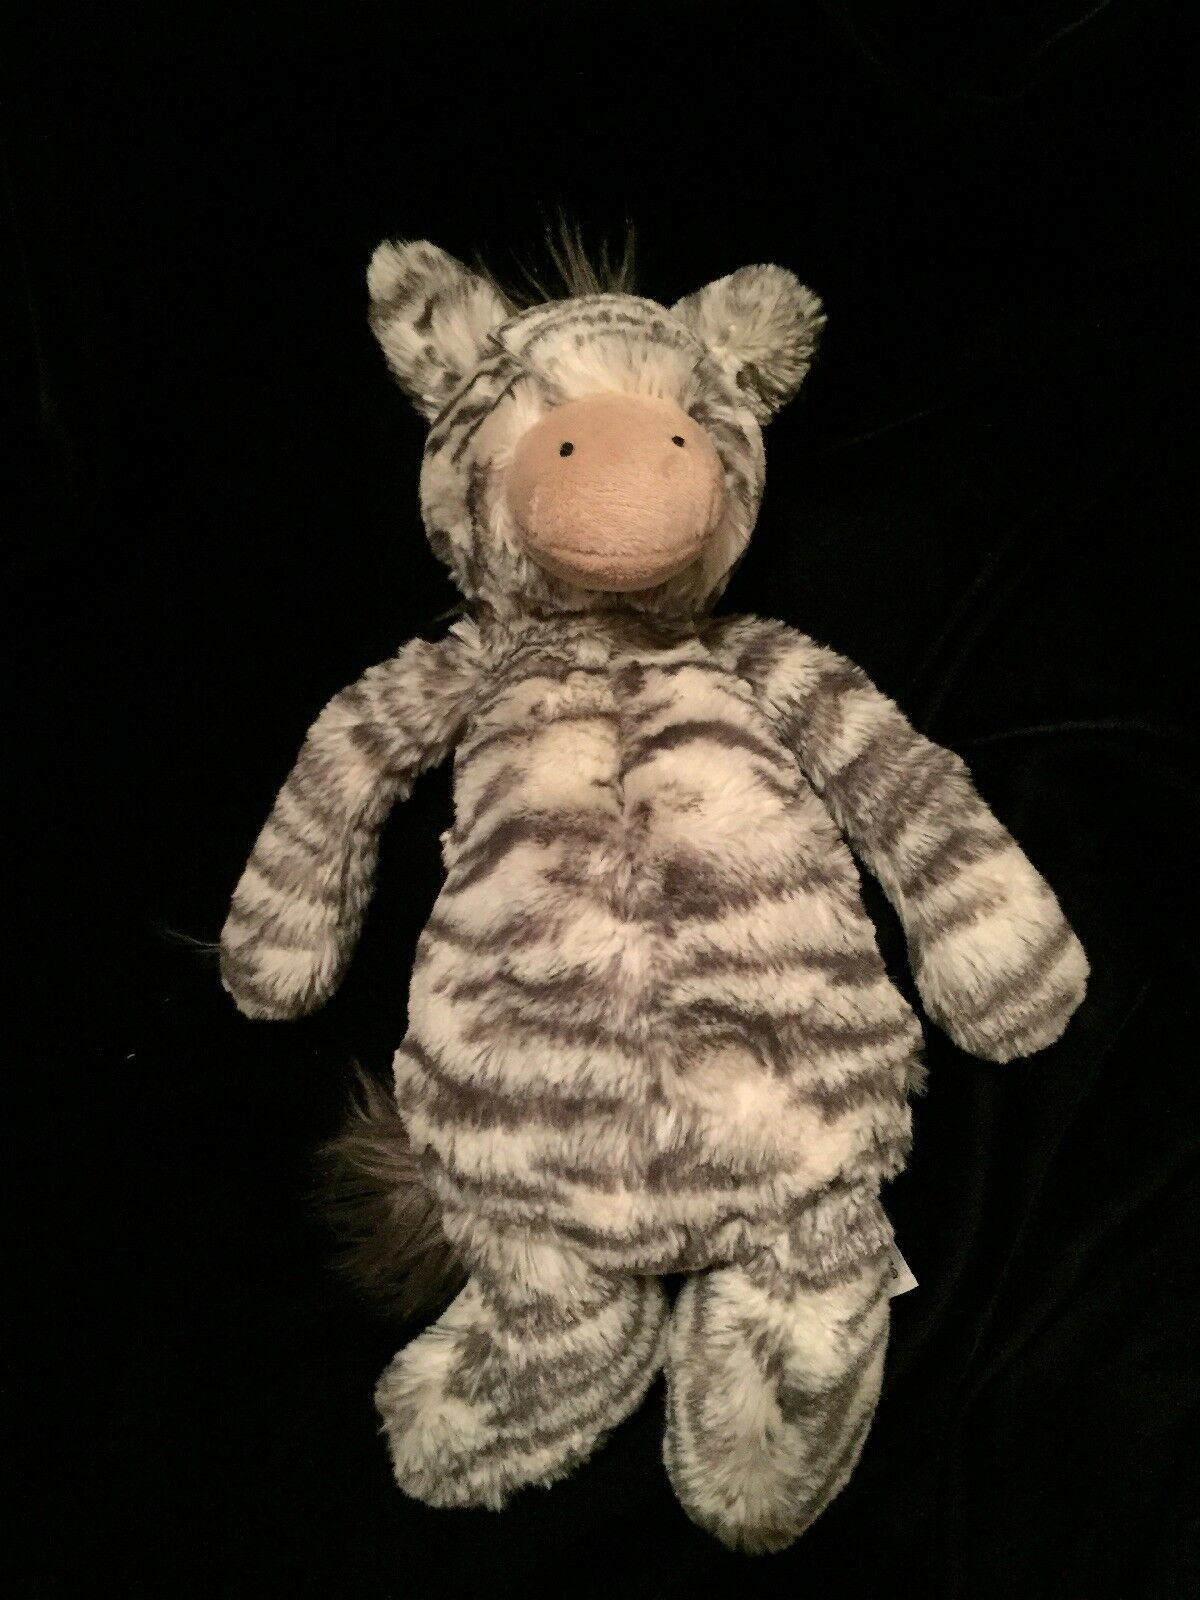 Jellycat Bashful Zebra Soft Toy Medium Plush Comforter Plush Stripe Grey White